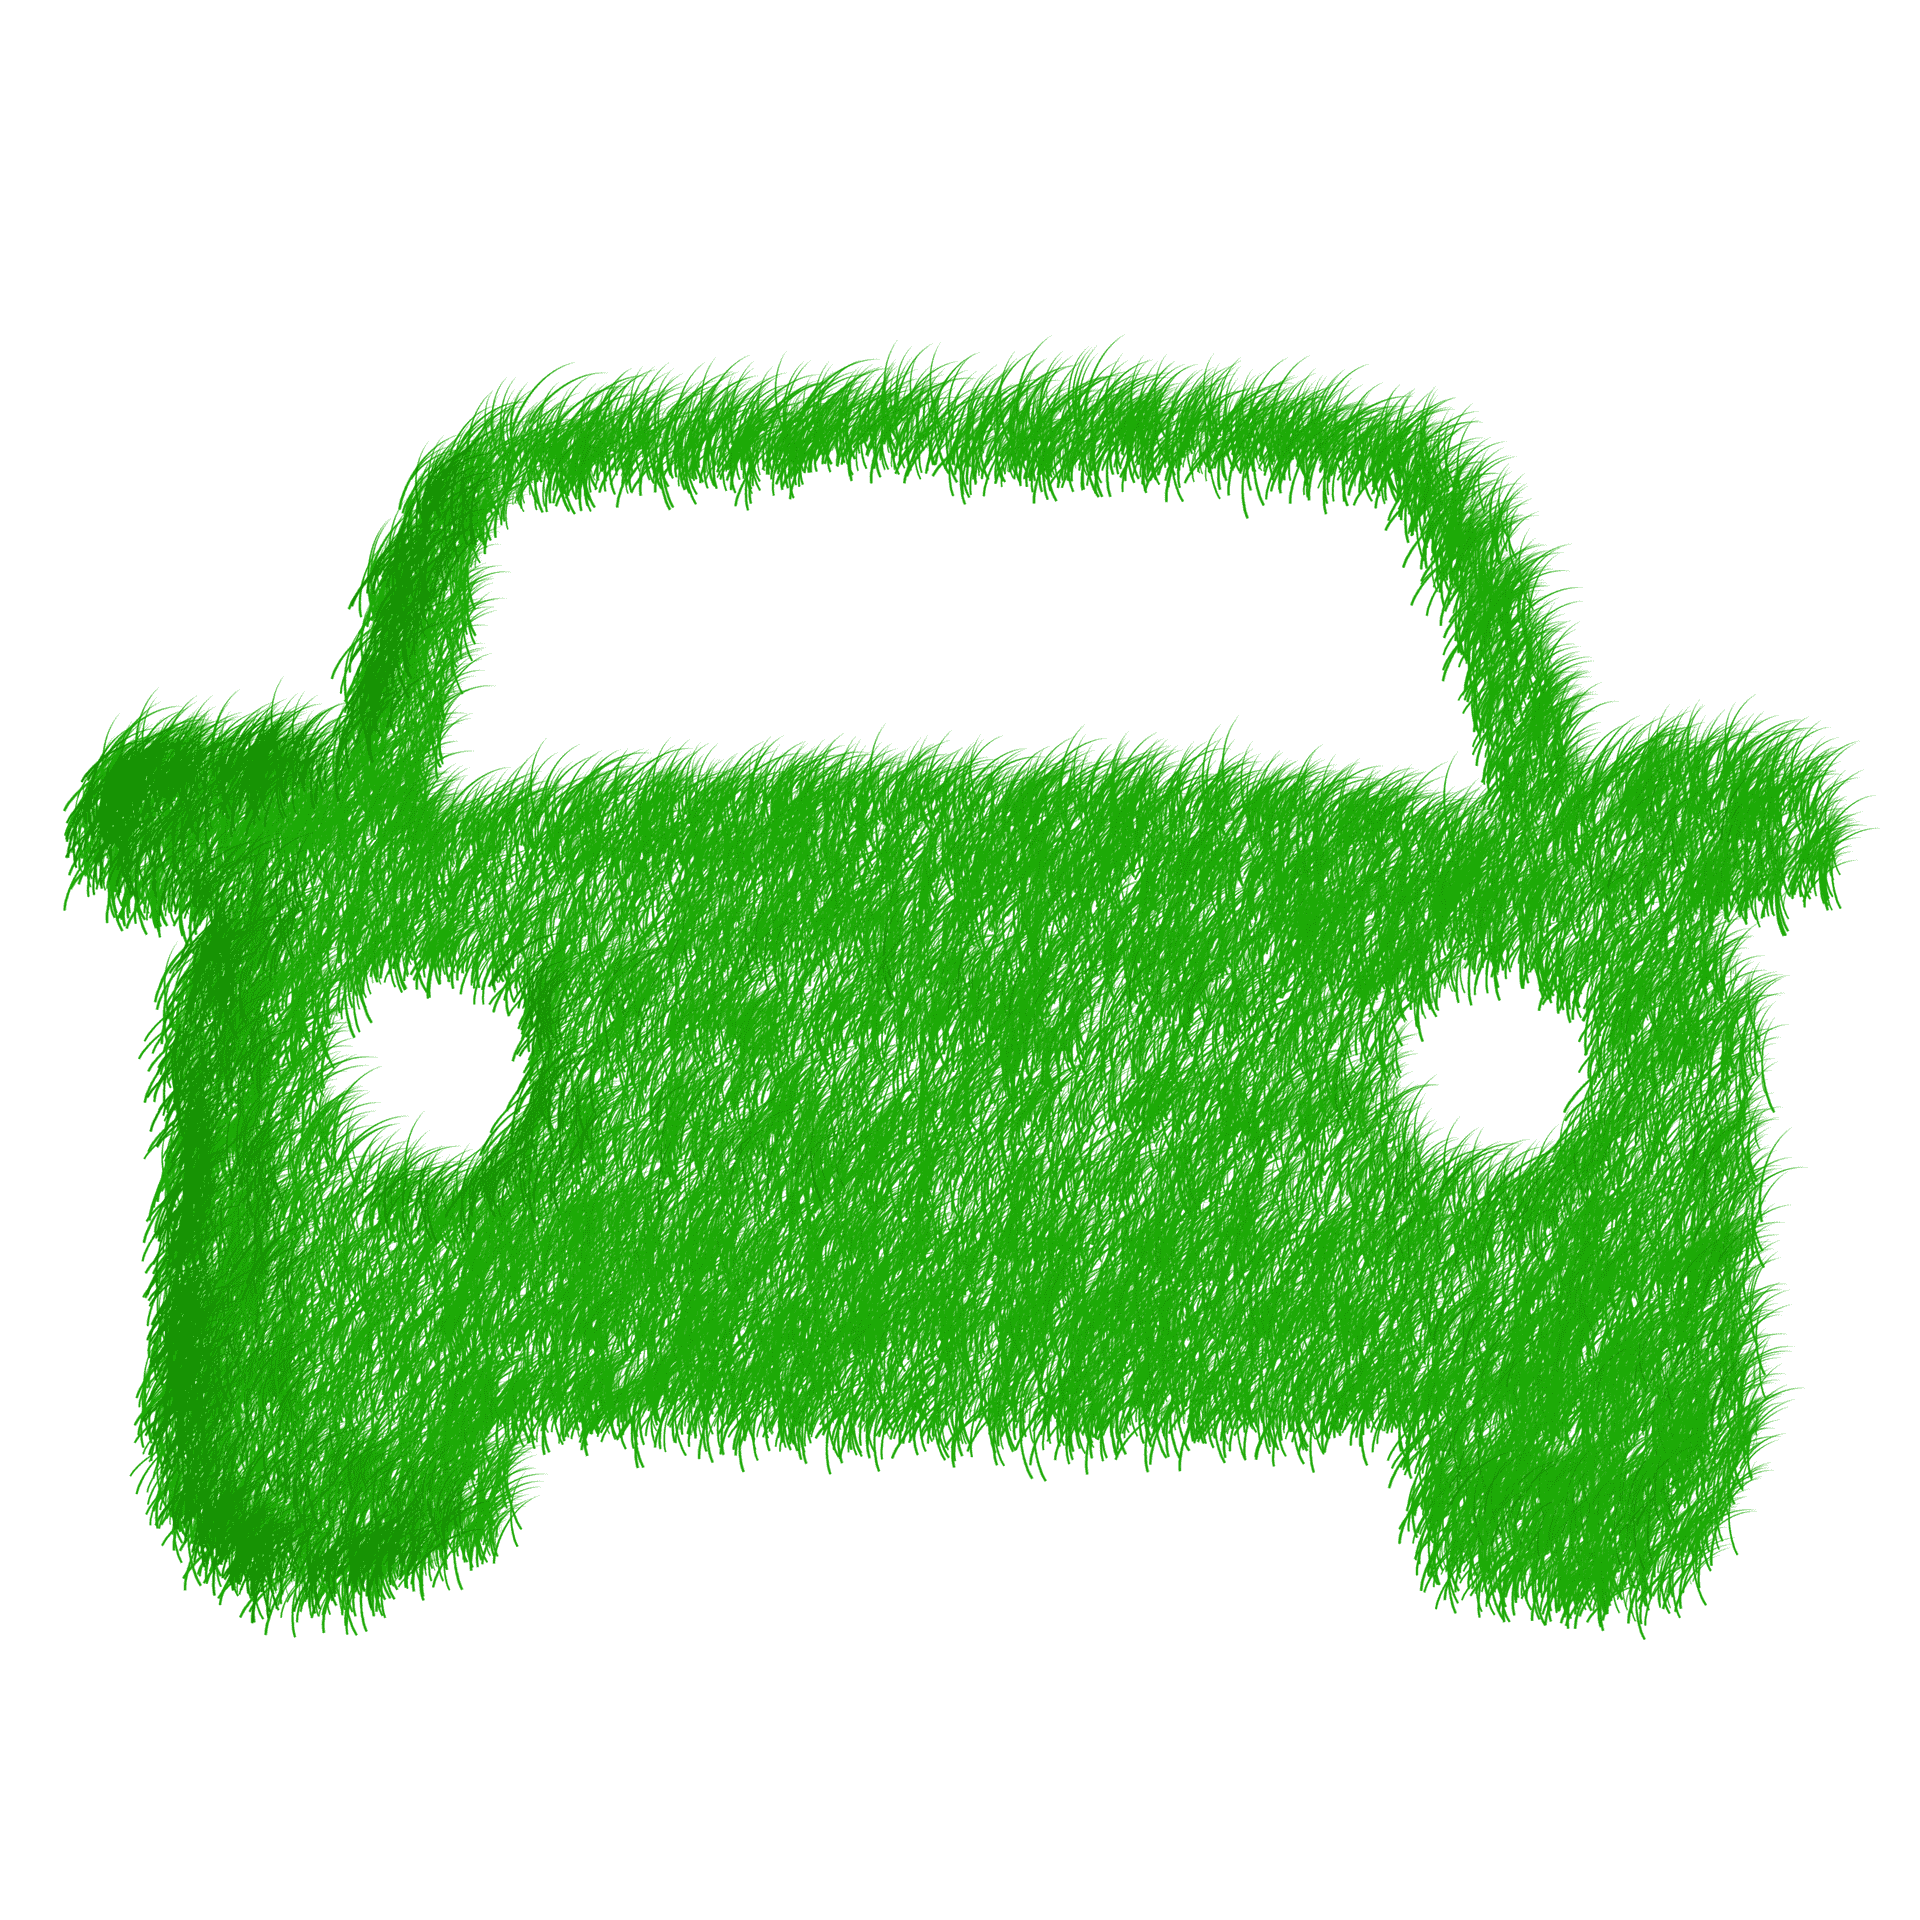 green-1974063_1920.png